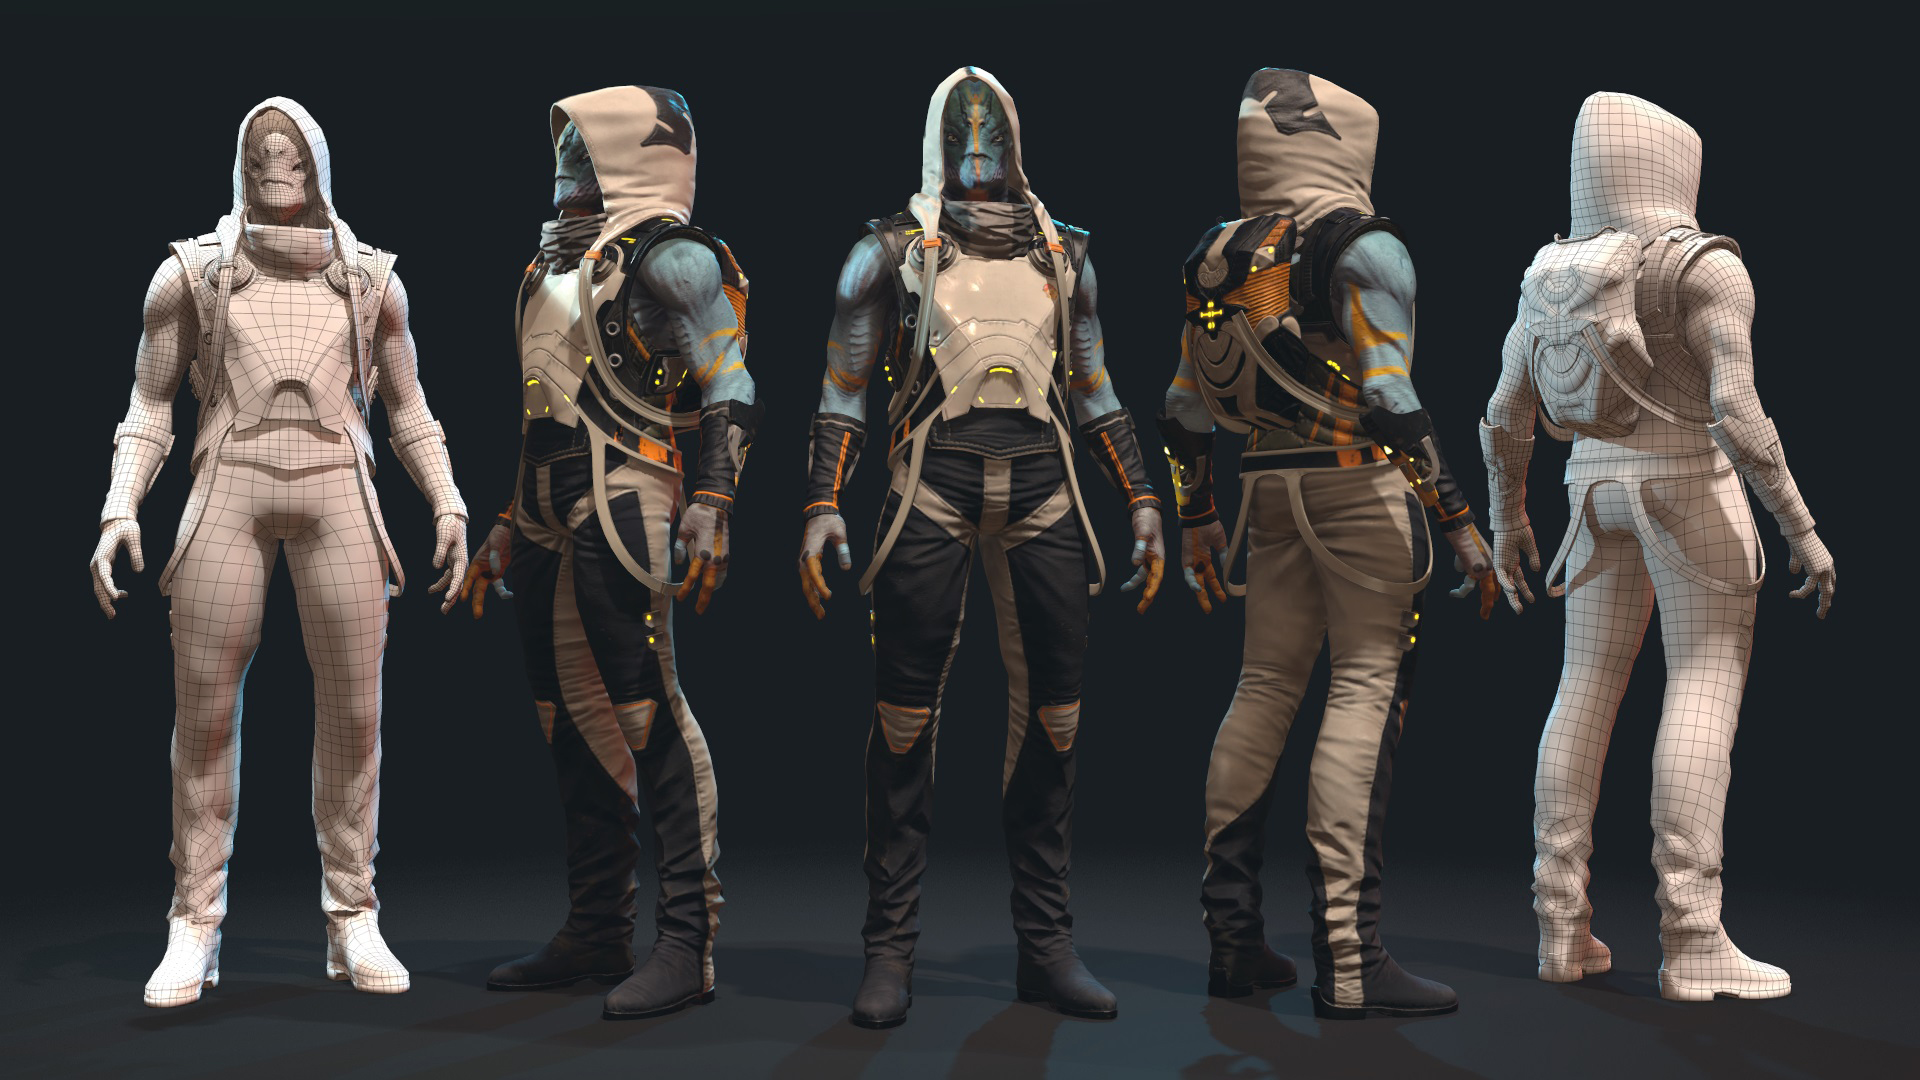 Sci-fi 3D Character: The Alien